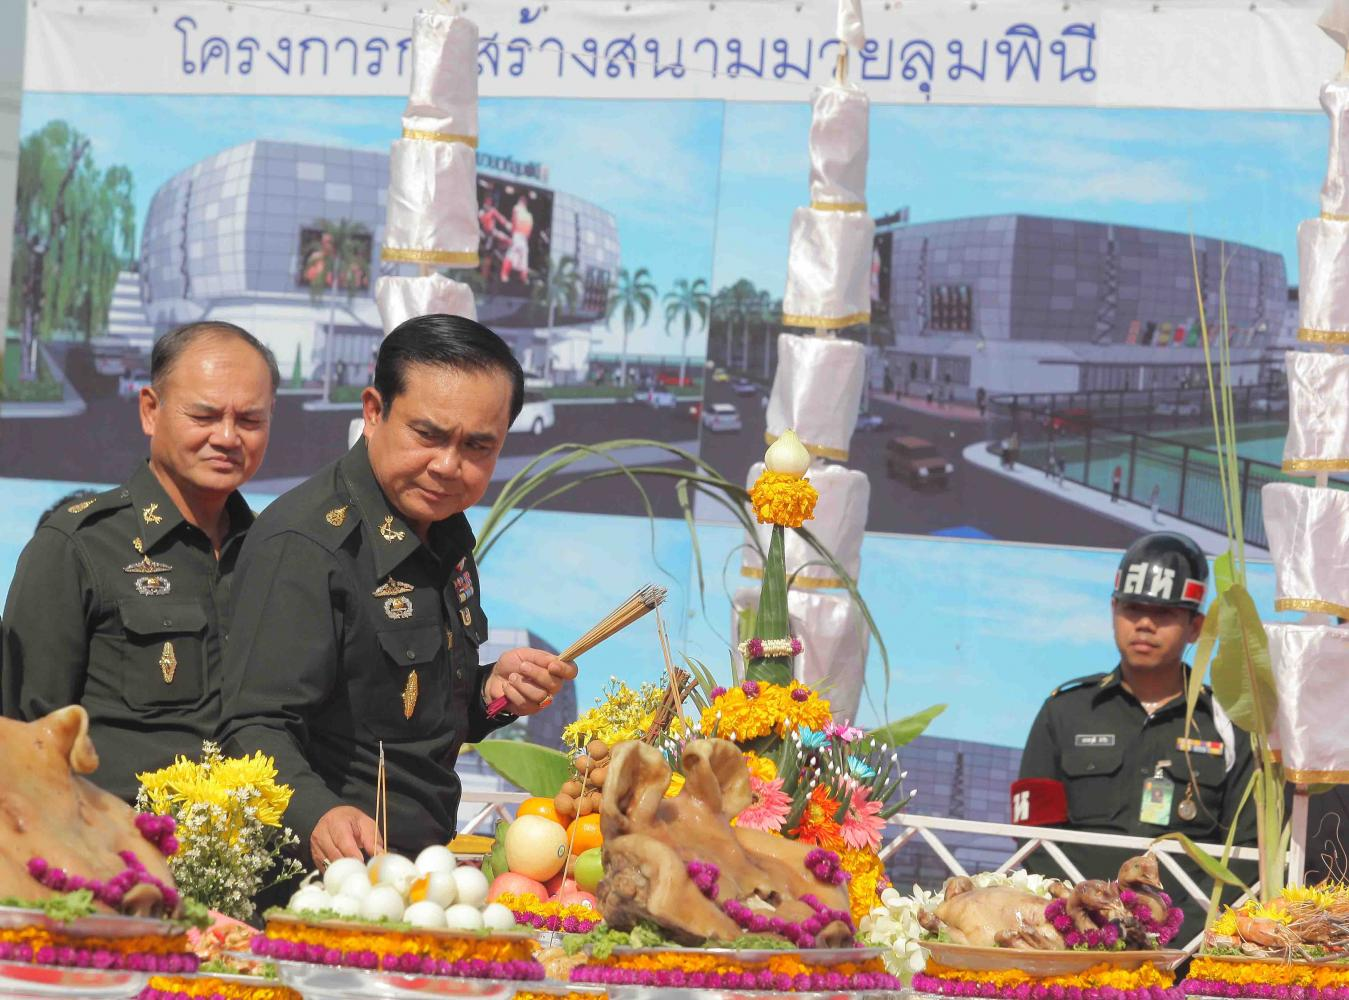 Gen Prayut Chan-o-cha, then army chief and executive director of the Lumpinee Boxing Stadium, lays foundation stones at the construction site of the new stadium on Ram Intra Road in Bangkok in August 2012. PATTANAPONG HIRUNARD